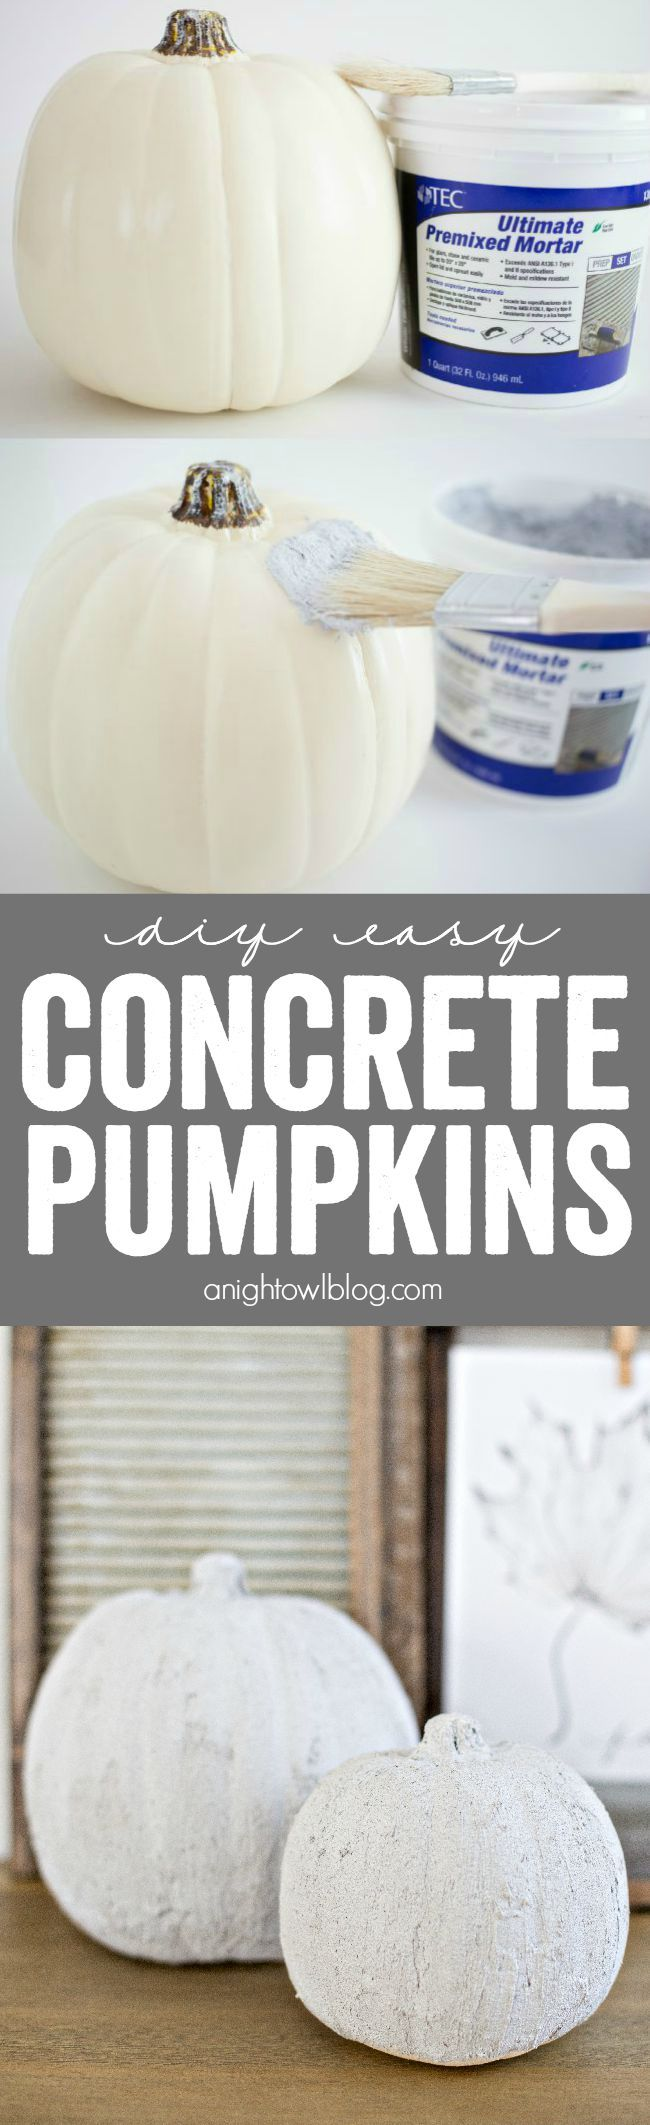 diy easy concrete pumpkins fall decor concrete and craft create diy easy concrete pumpkins at home in just minutes